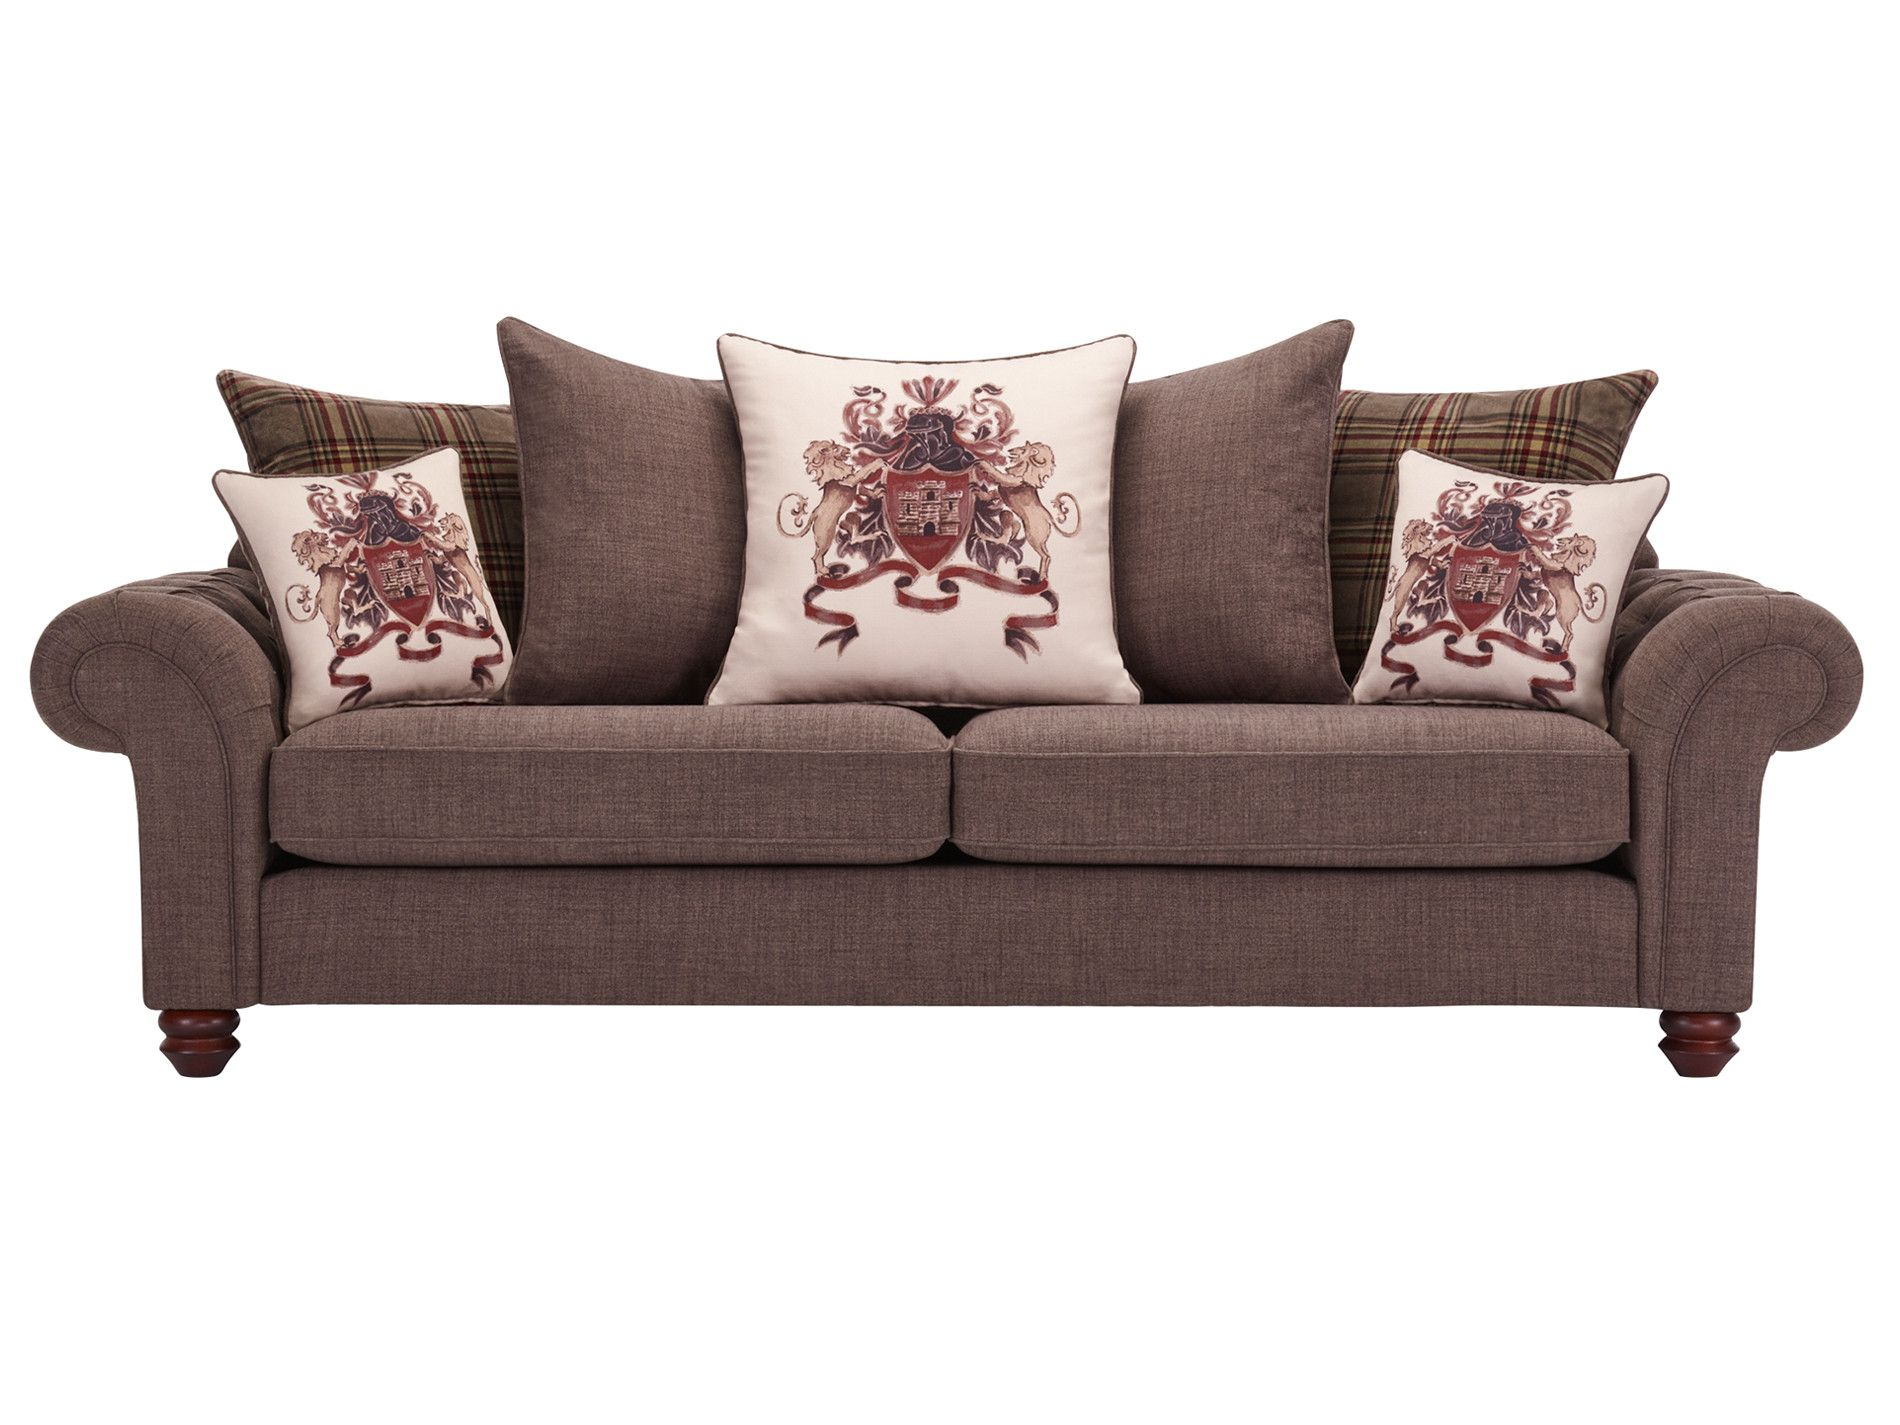 Large Square Sofa Cushions Couches Bed The Range  Review Home Decor